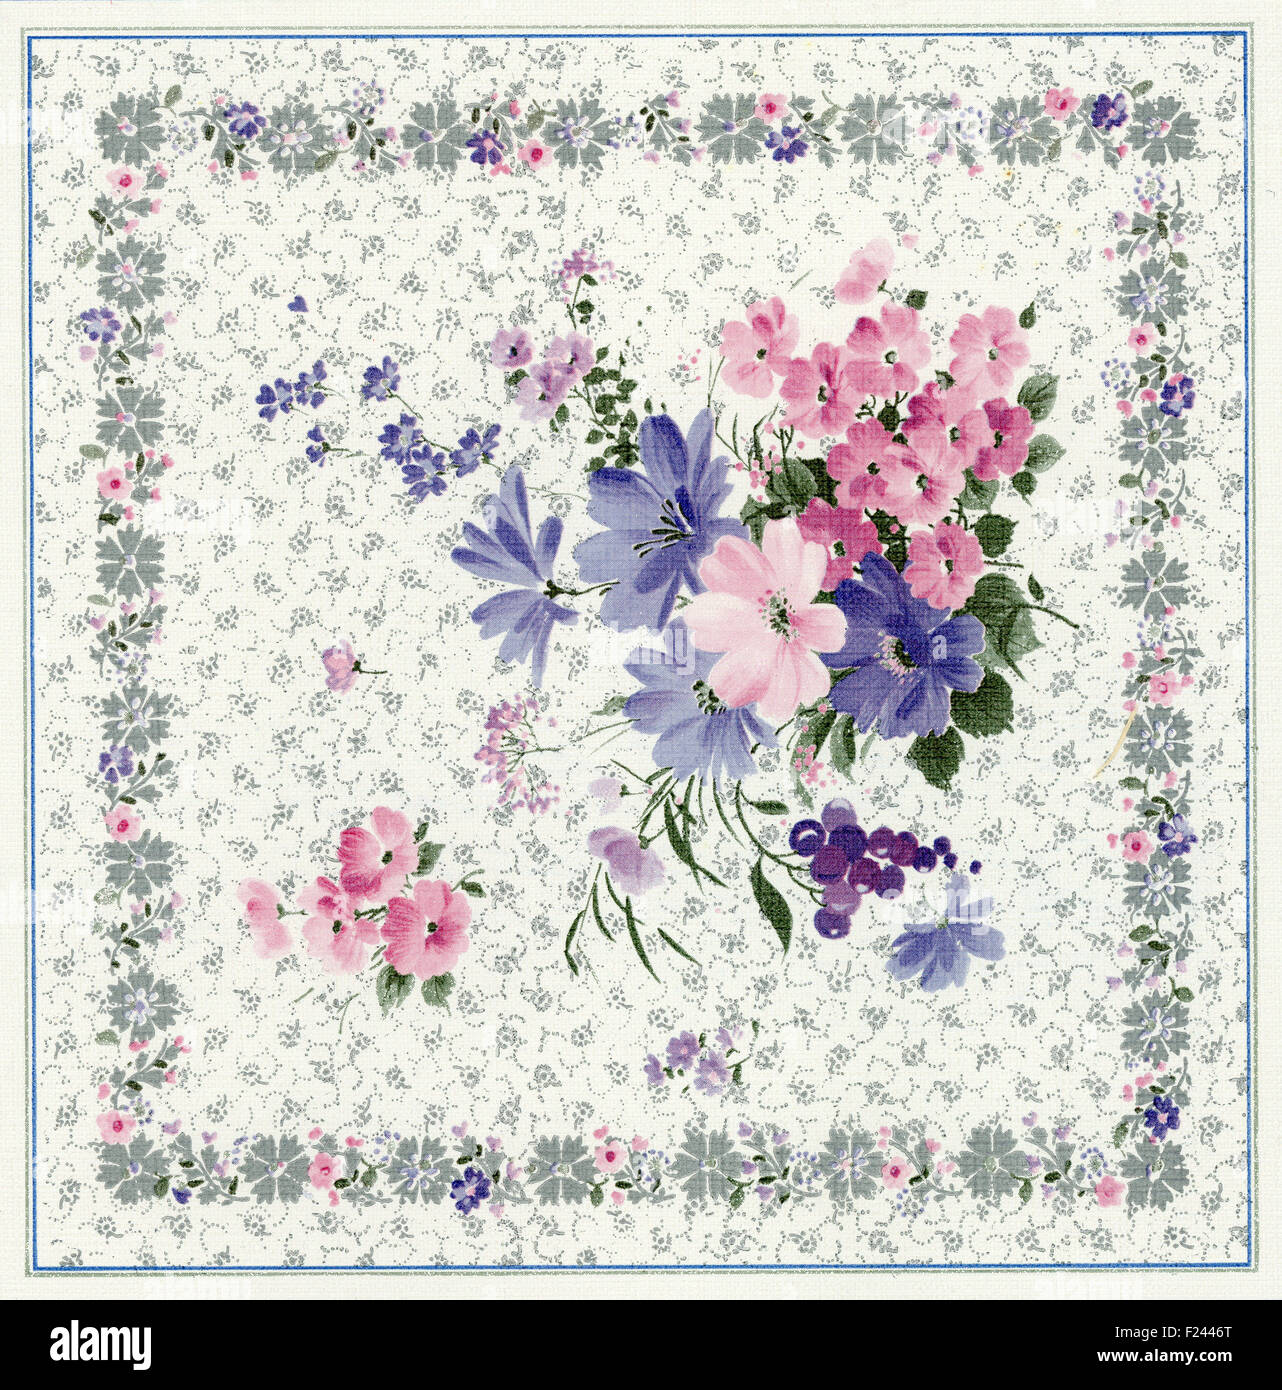 flowery wallpaper stock photos flowery wallpaper stock images alamy